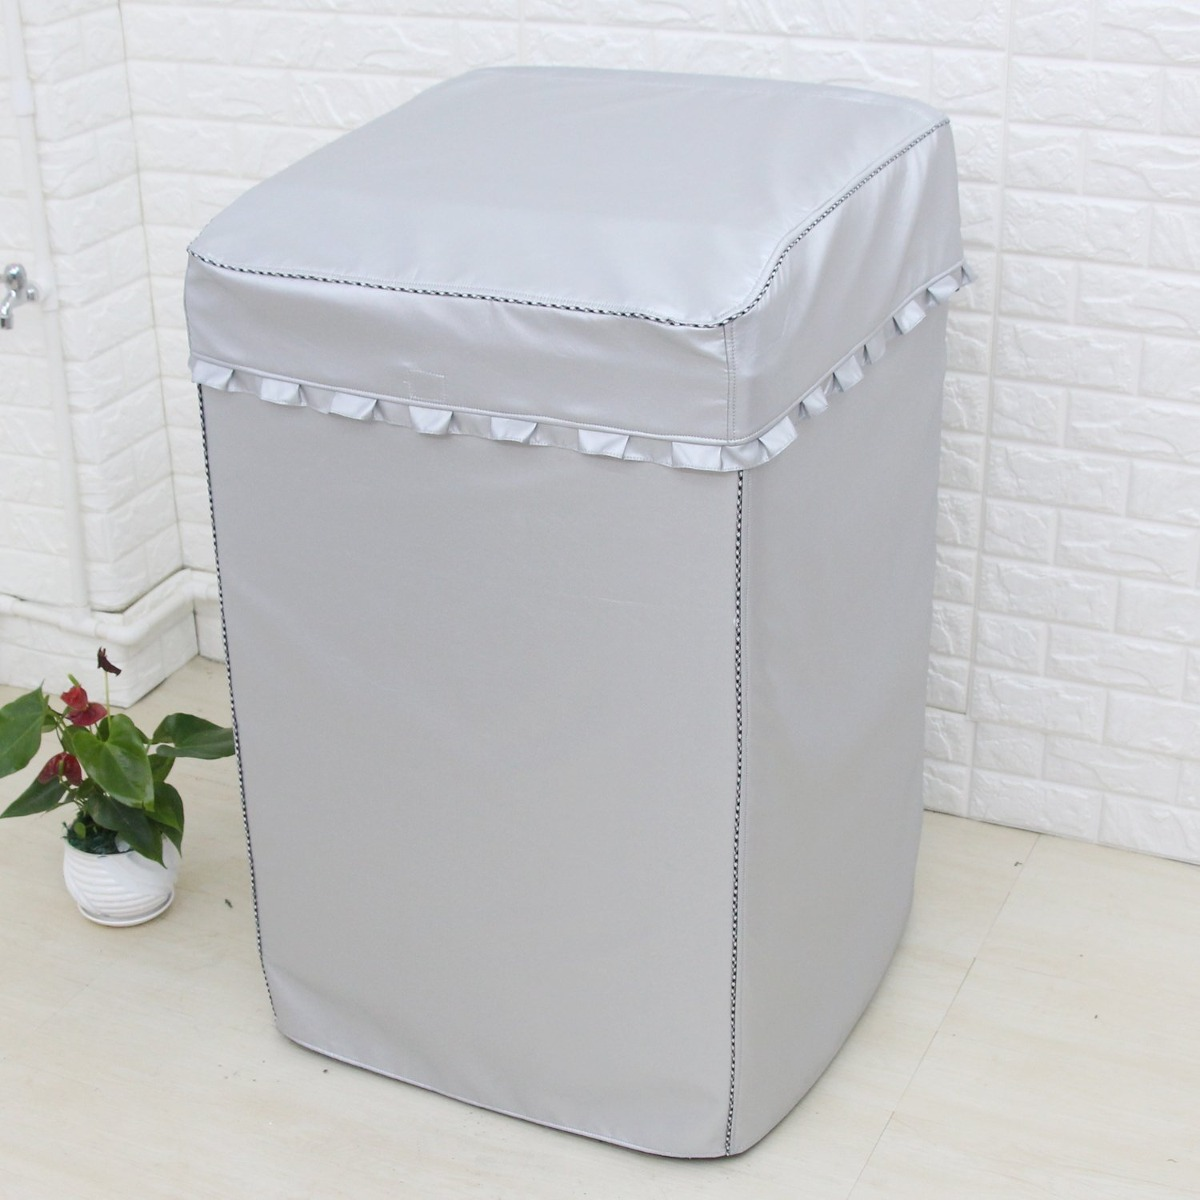 [mr you]thickness Lift Washing Machine Cover For Top-load Wa